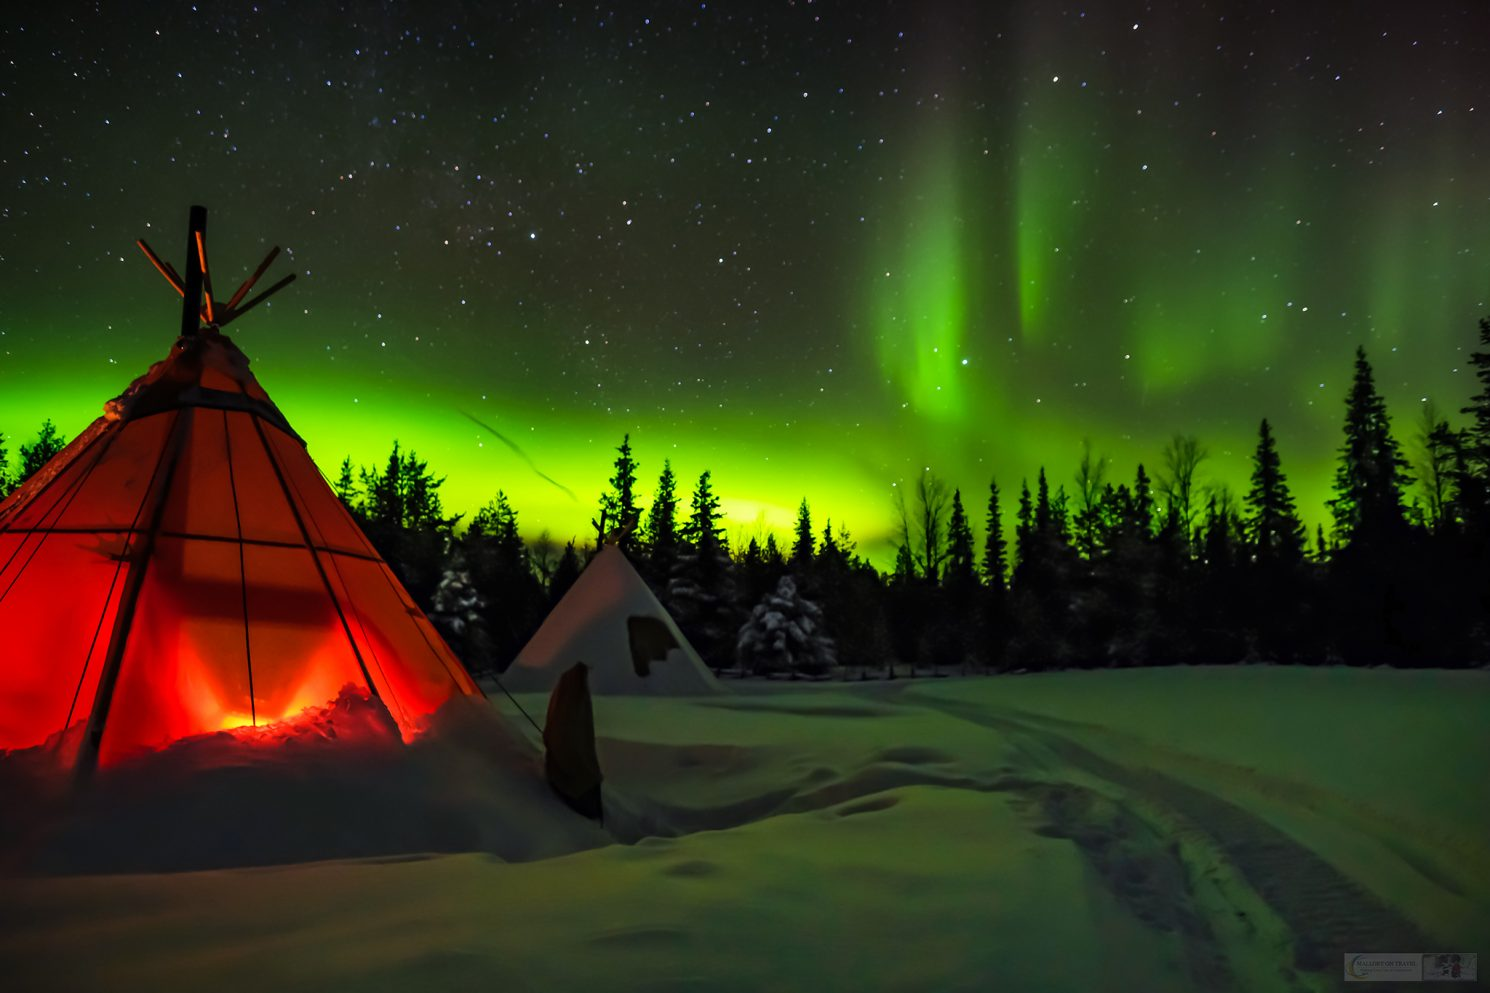 The Northern Lights at Sapminature camp at Nietsak, near Gallivare in Swedish Lapland, inside the Arctic Circle, Arctic Sweden on Mallory on Travel adventure travel, photography, travel Iain Mallory_Lapland-1-5